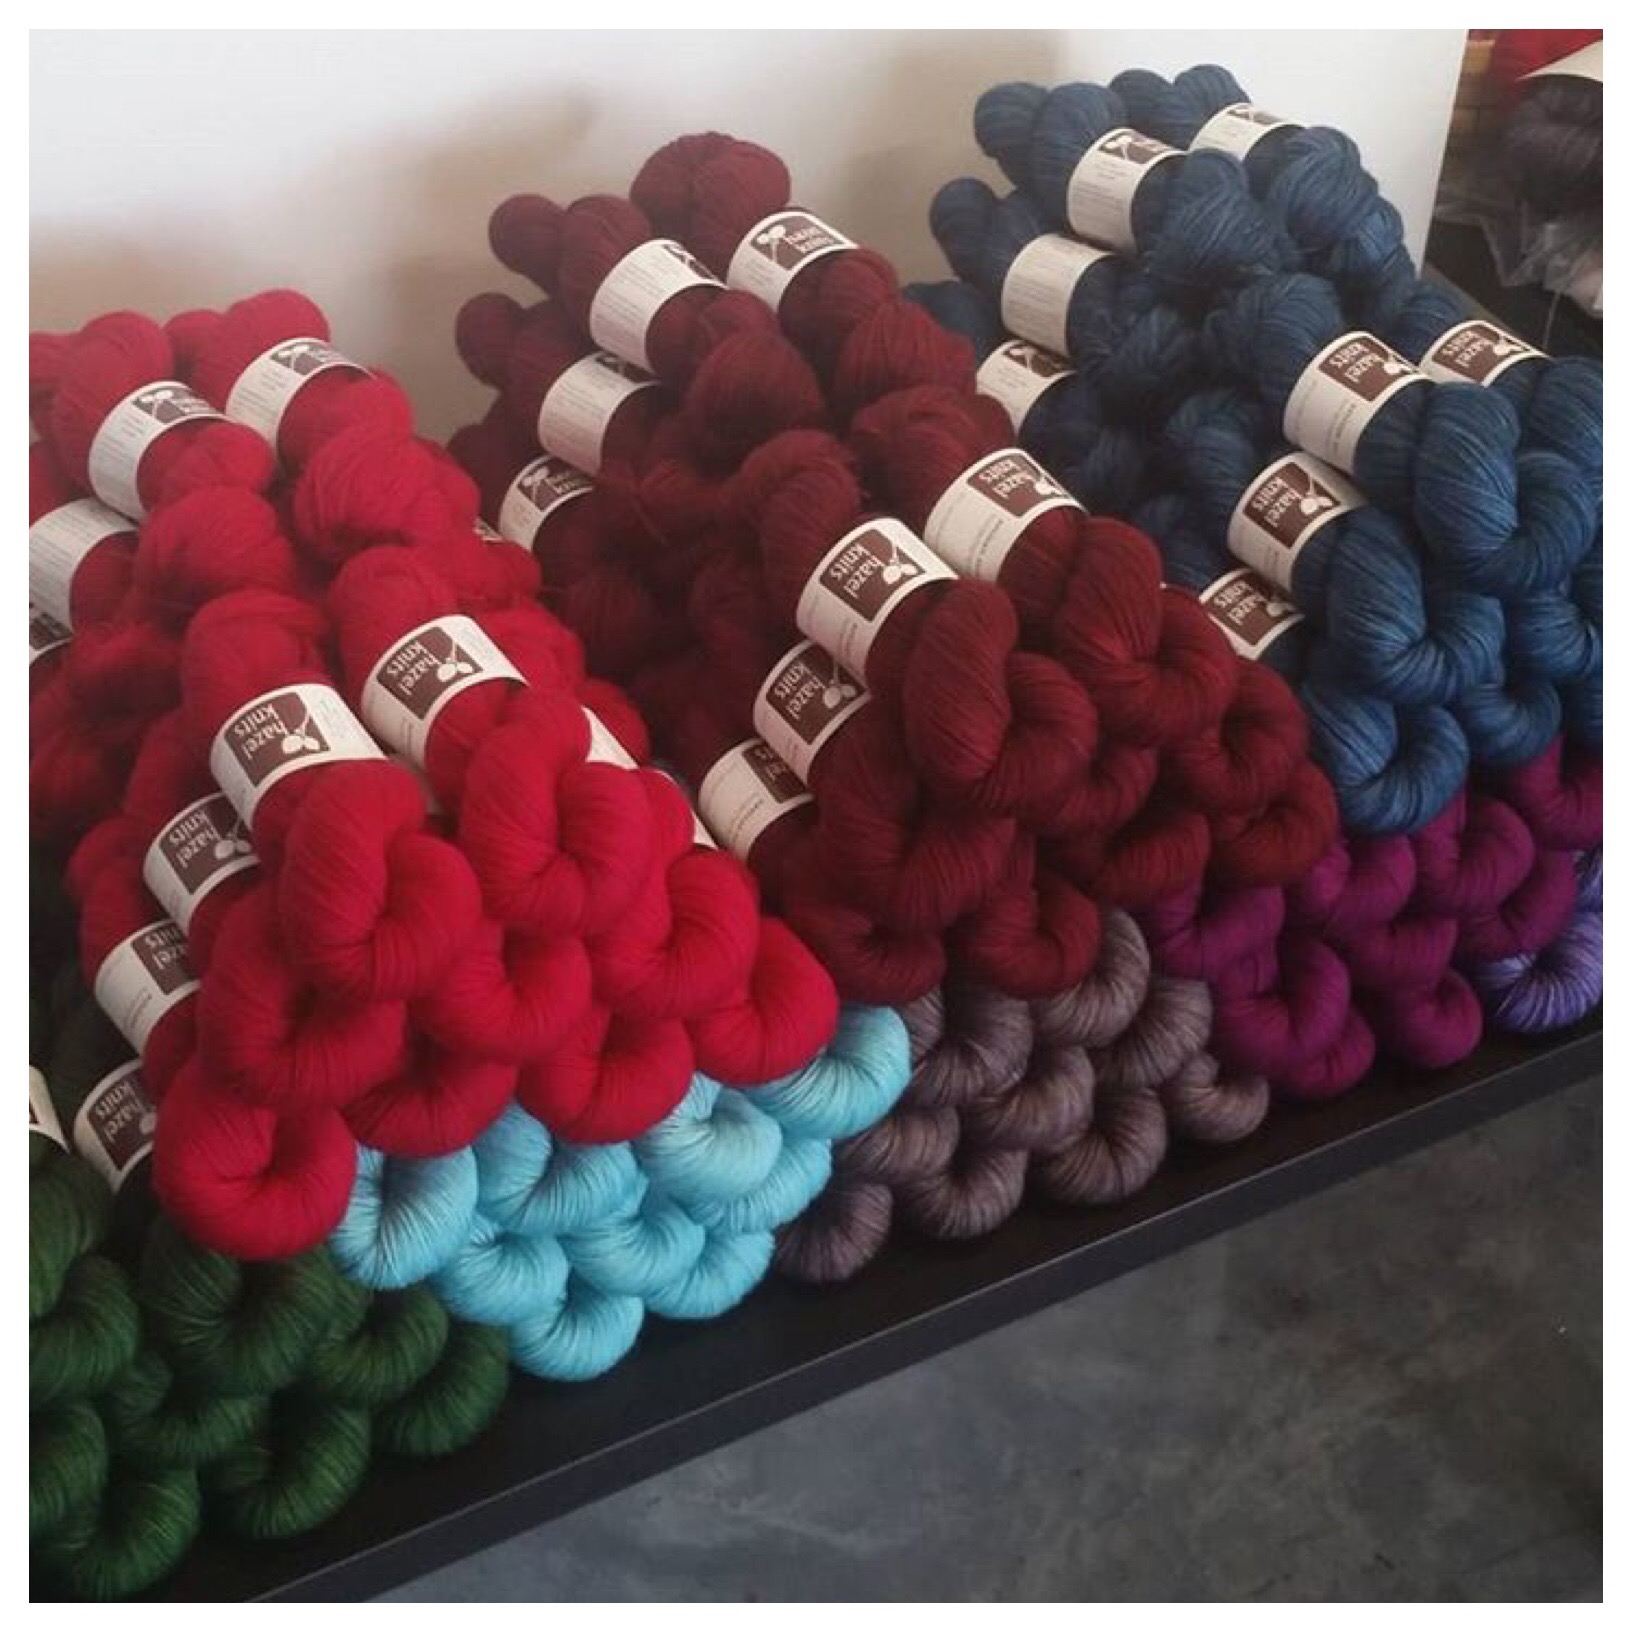 Ready to Ship  - Hazel Knits is packing up a special order just for the Weaving Dept.  Make sure you make it in to see these colors in person!